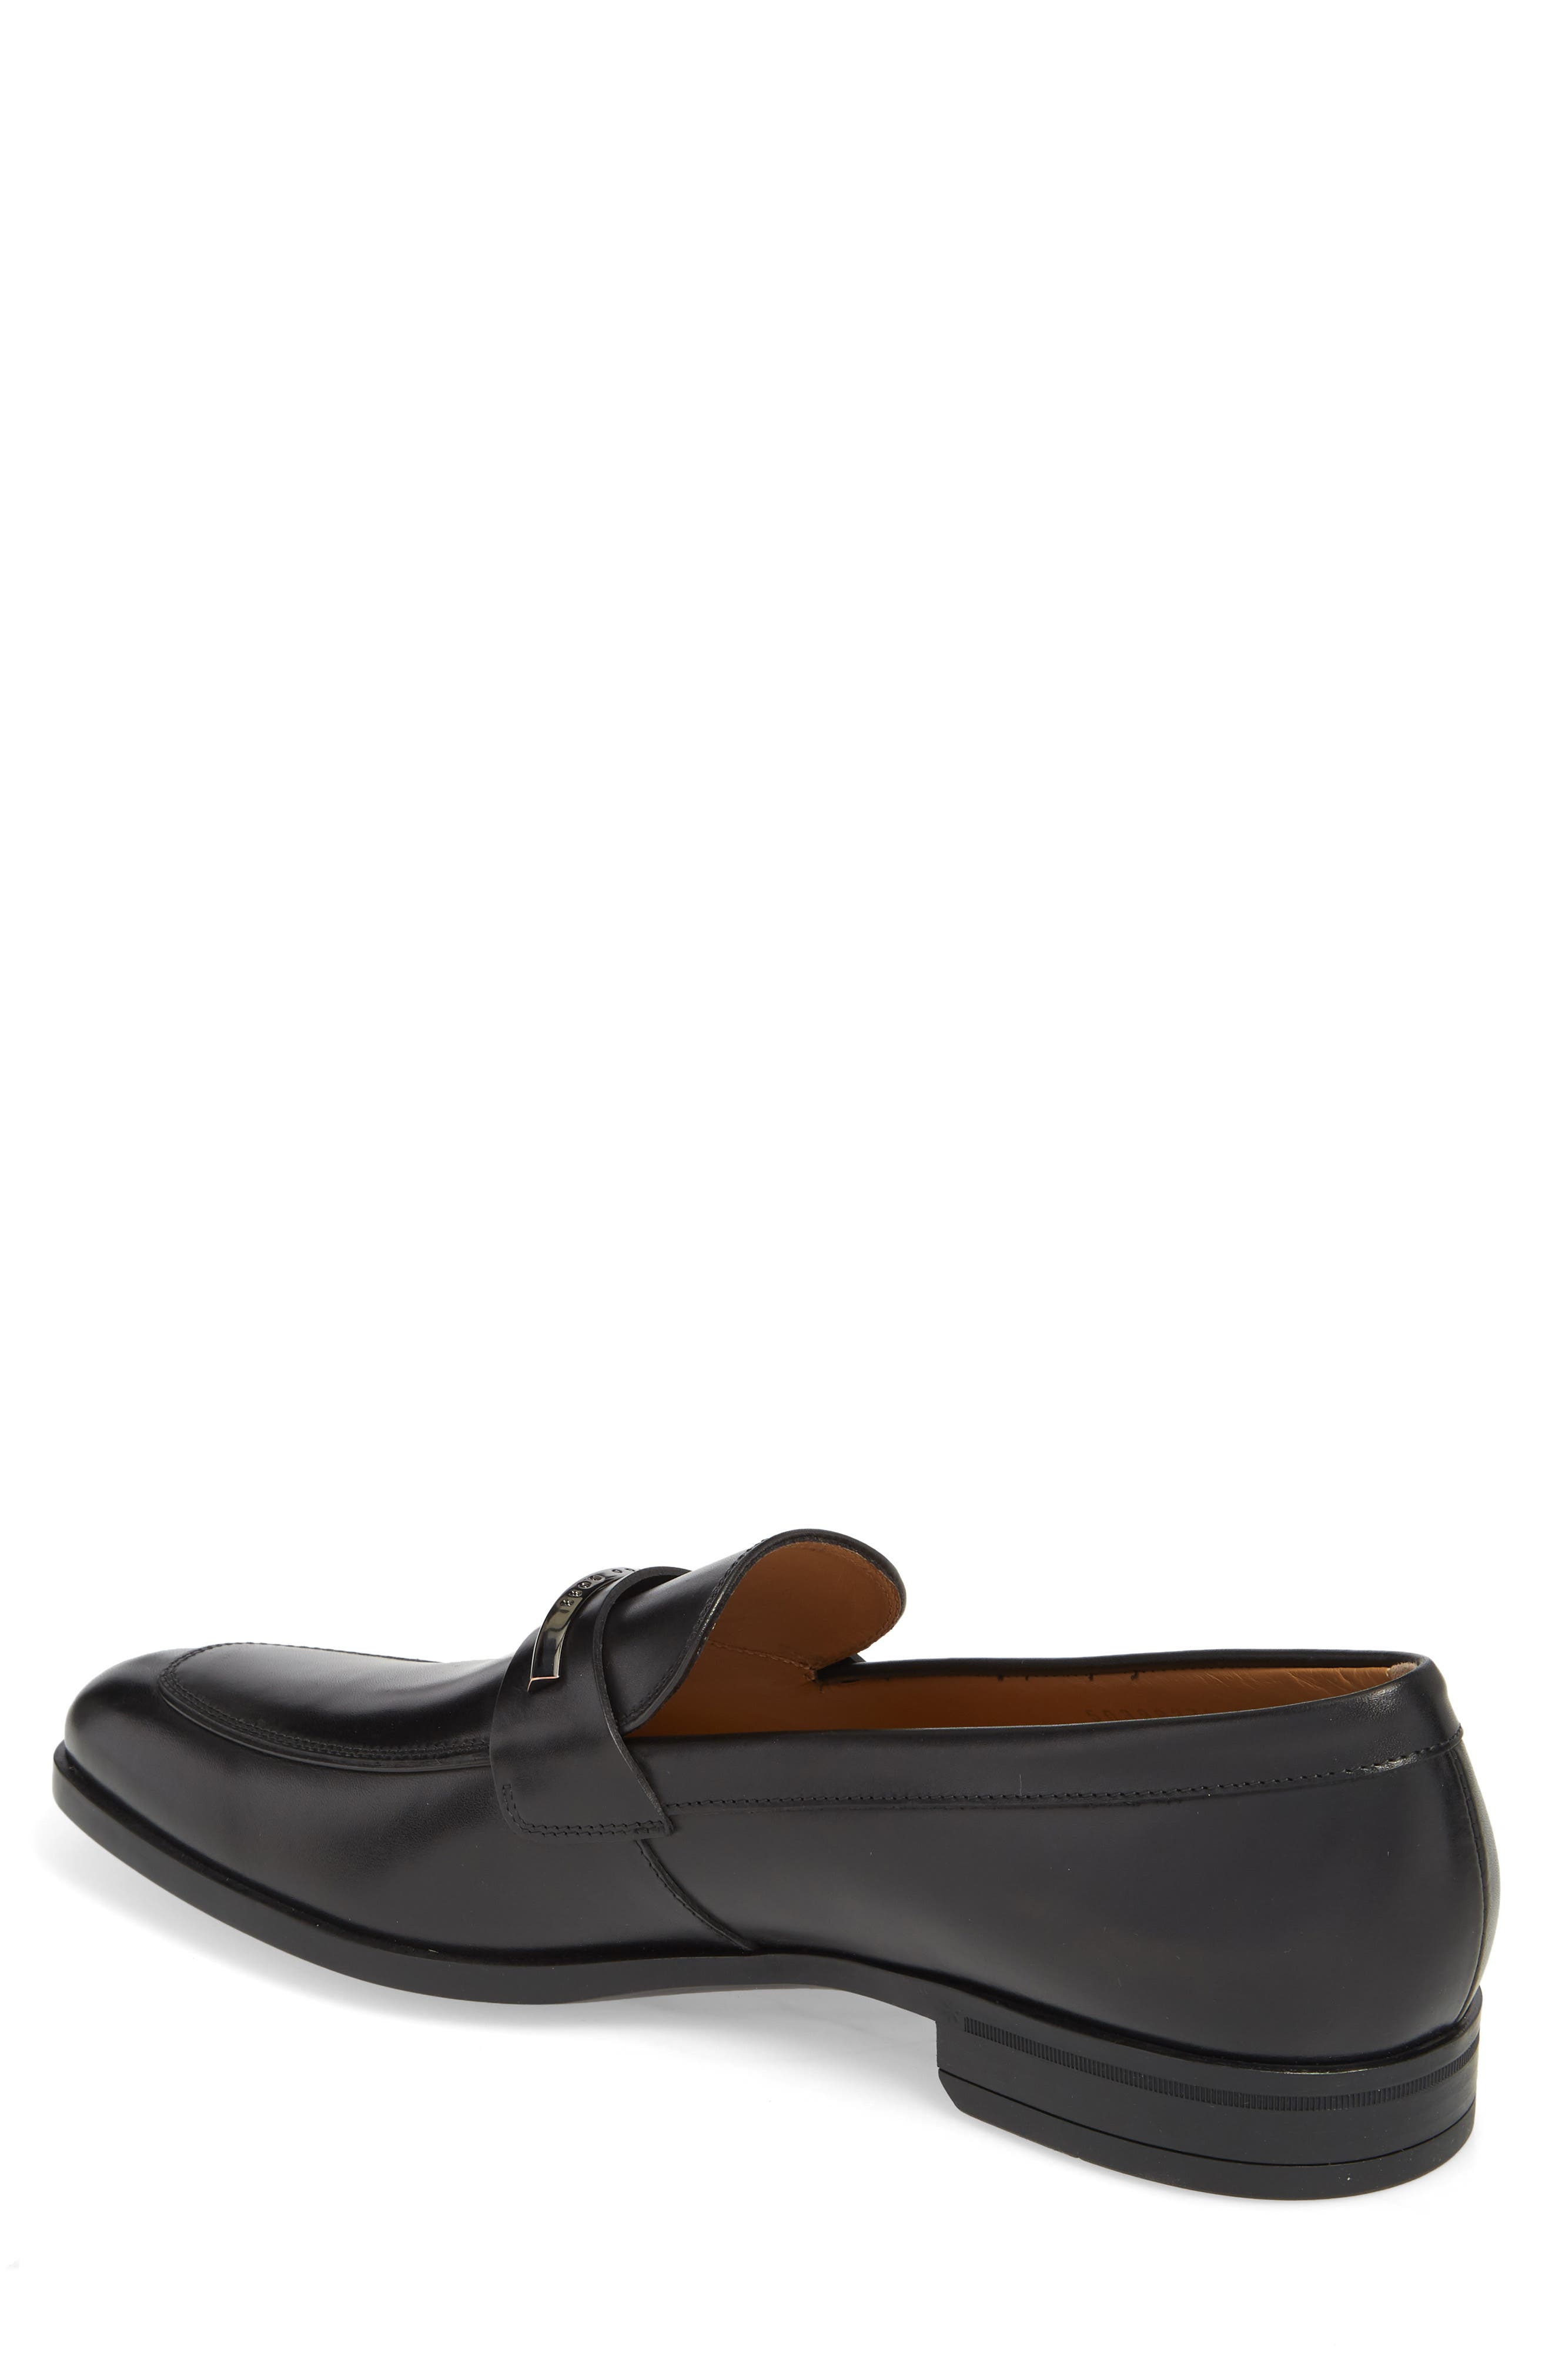 Hugo Boss Portland Solid Bit Loafer,                             Alternate thumbnail 2, color,                             BLACK LEATHER